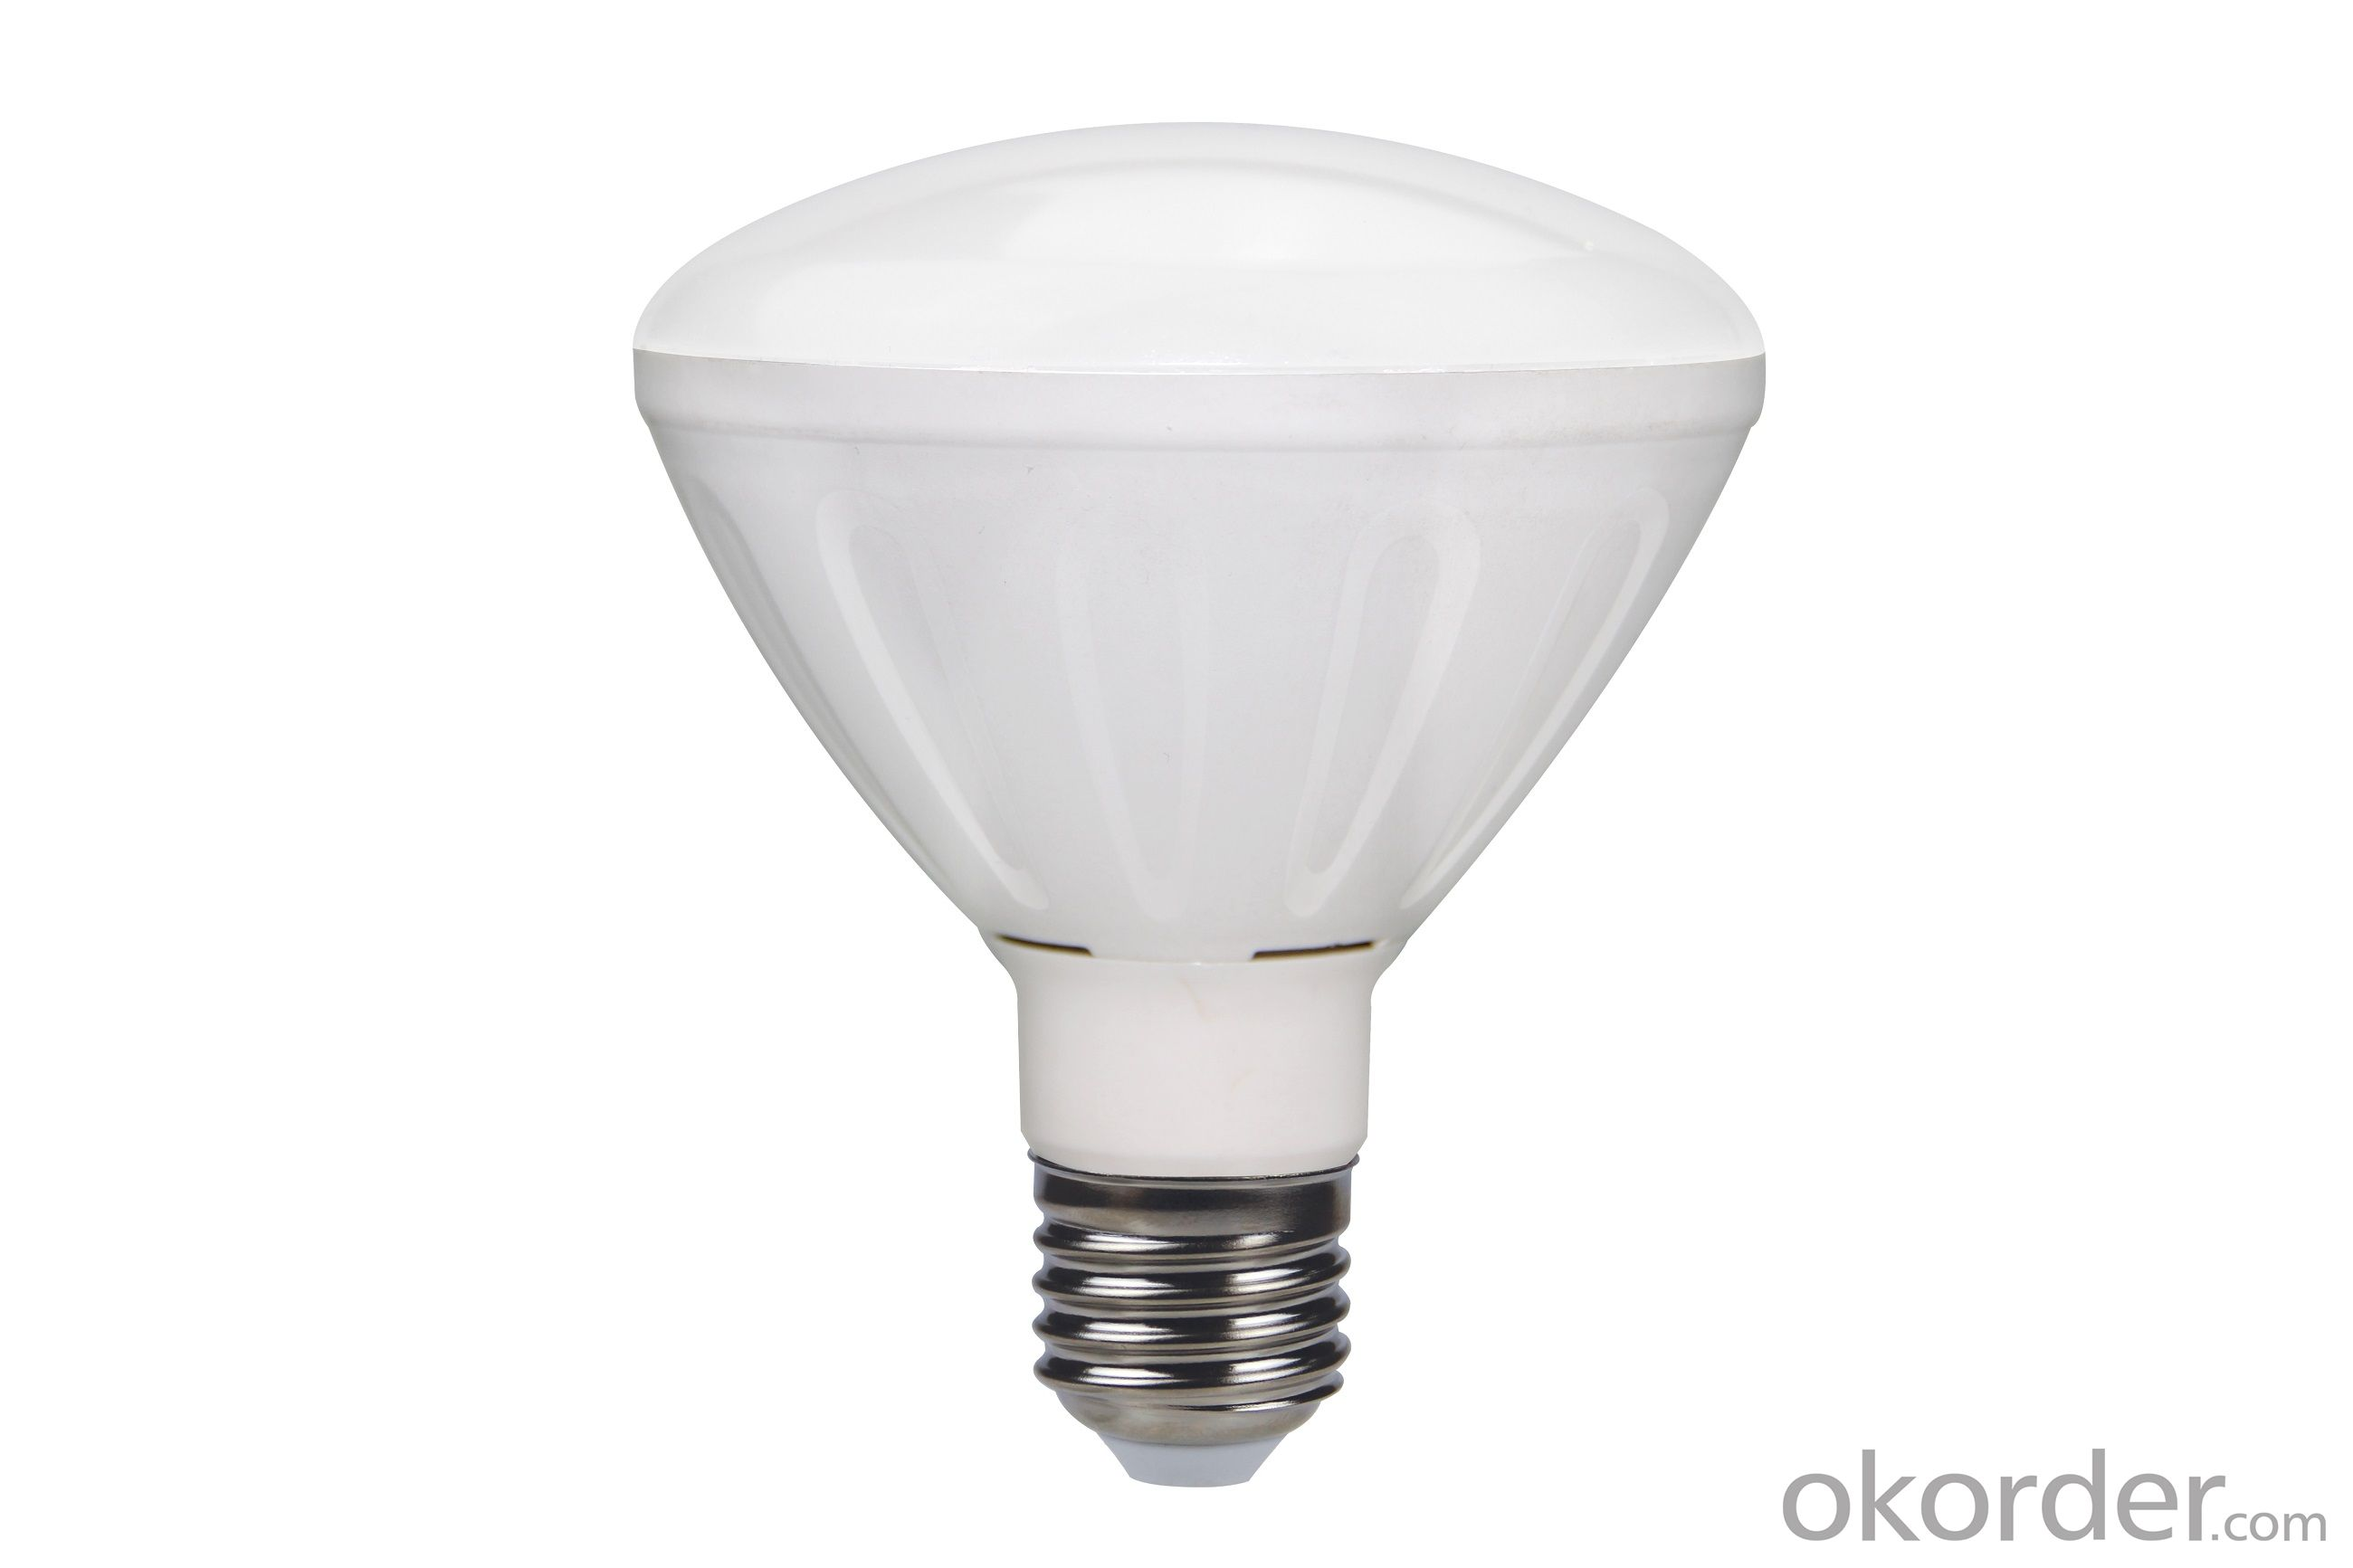 LED Bulb Light E27 3000k-5000K-6500k BR30 9W 800 Lumen Non Dimmable